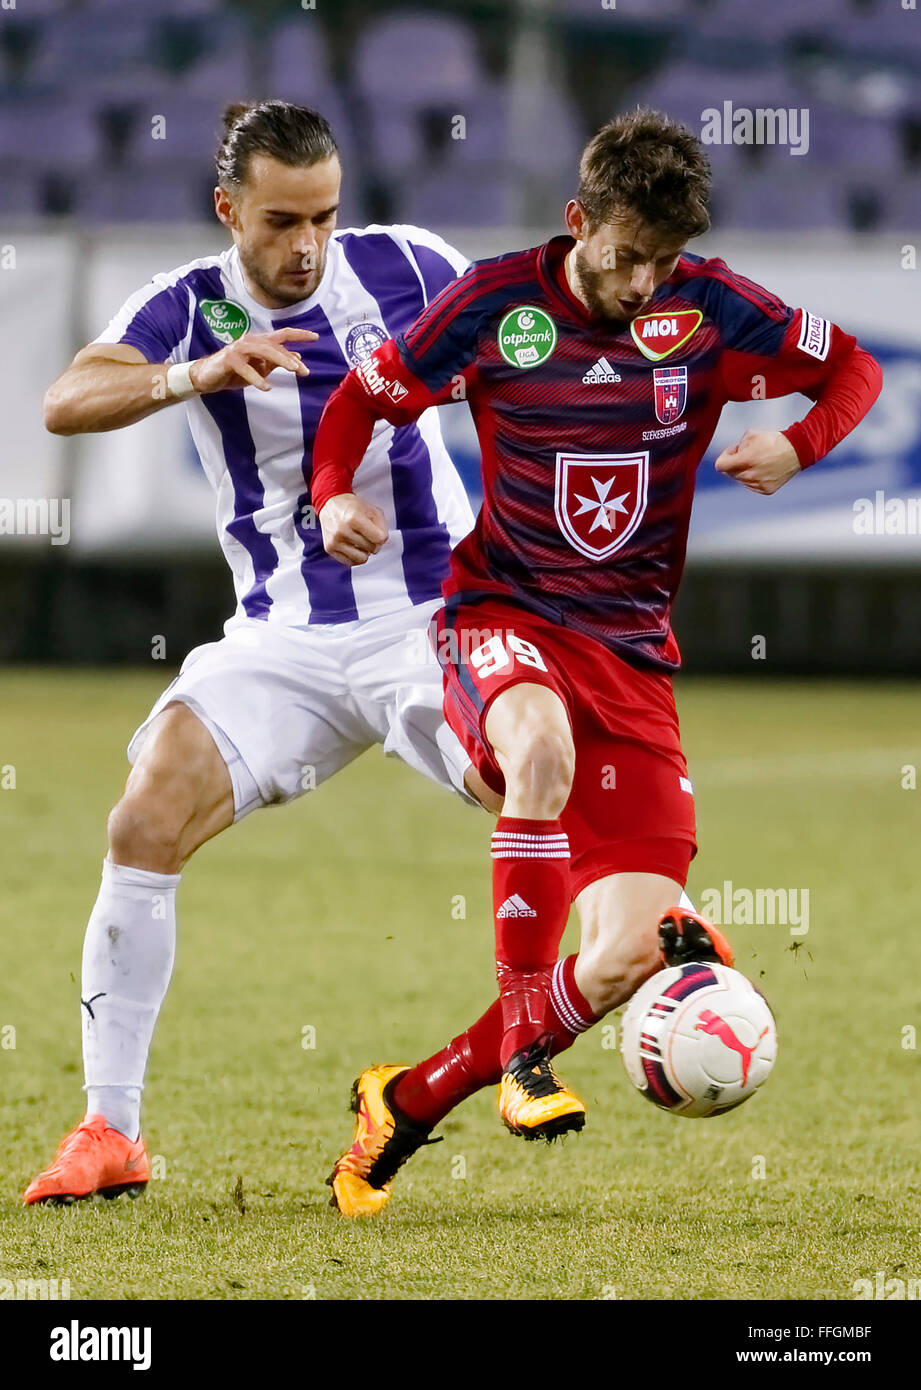 Budapest, Hungary. 13th Feb, 2016. David Mohl of Ujpest (l) tries to tackle Asmir Suljic of Videoton during Ujpest - Stock Image